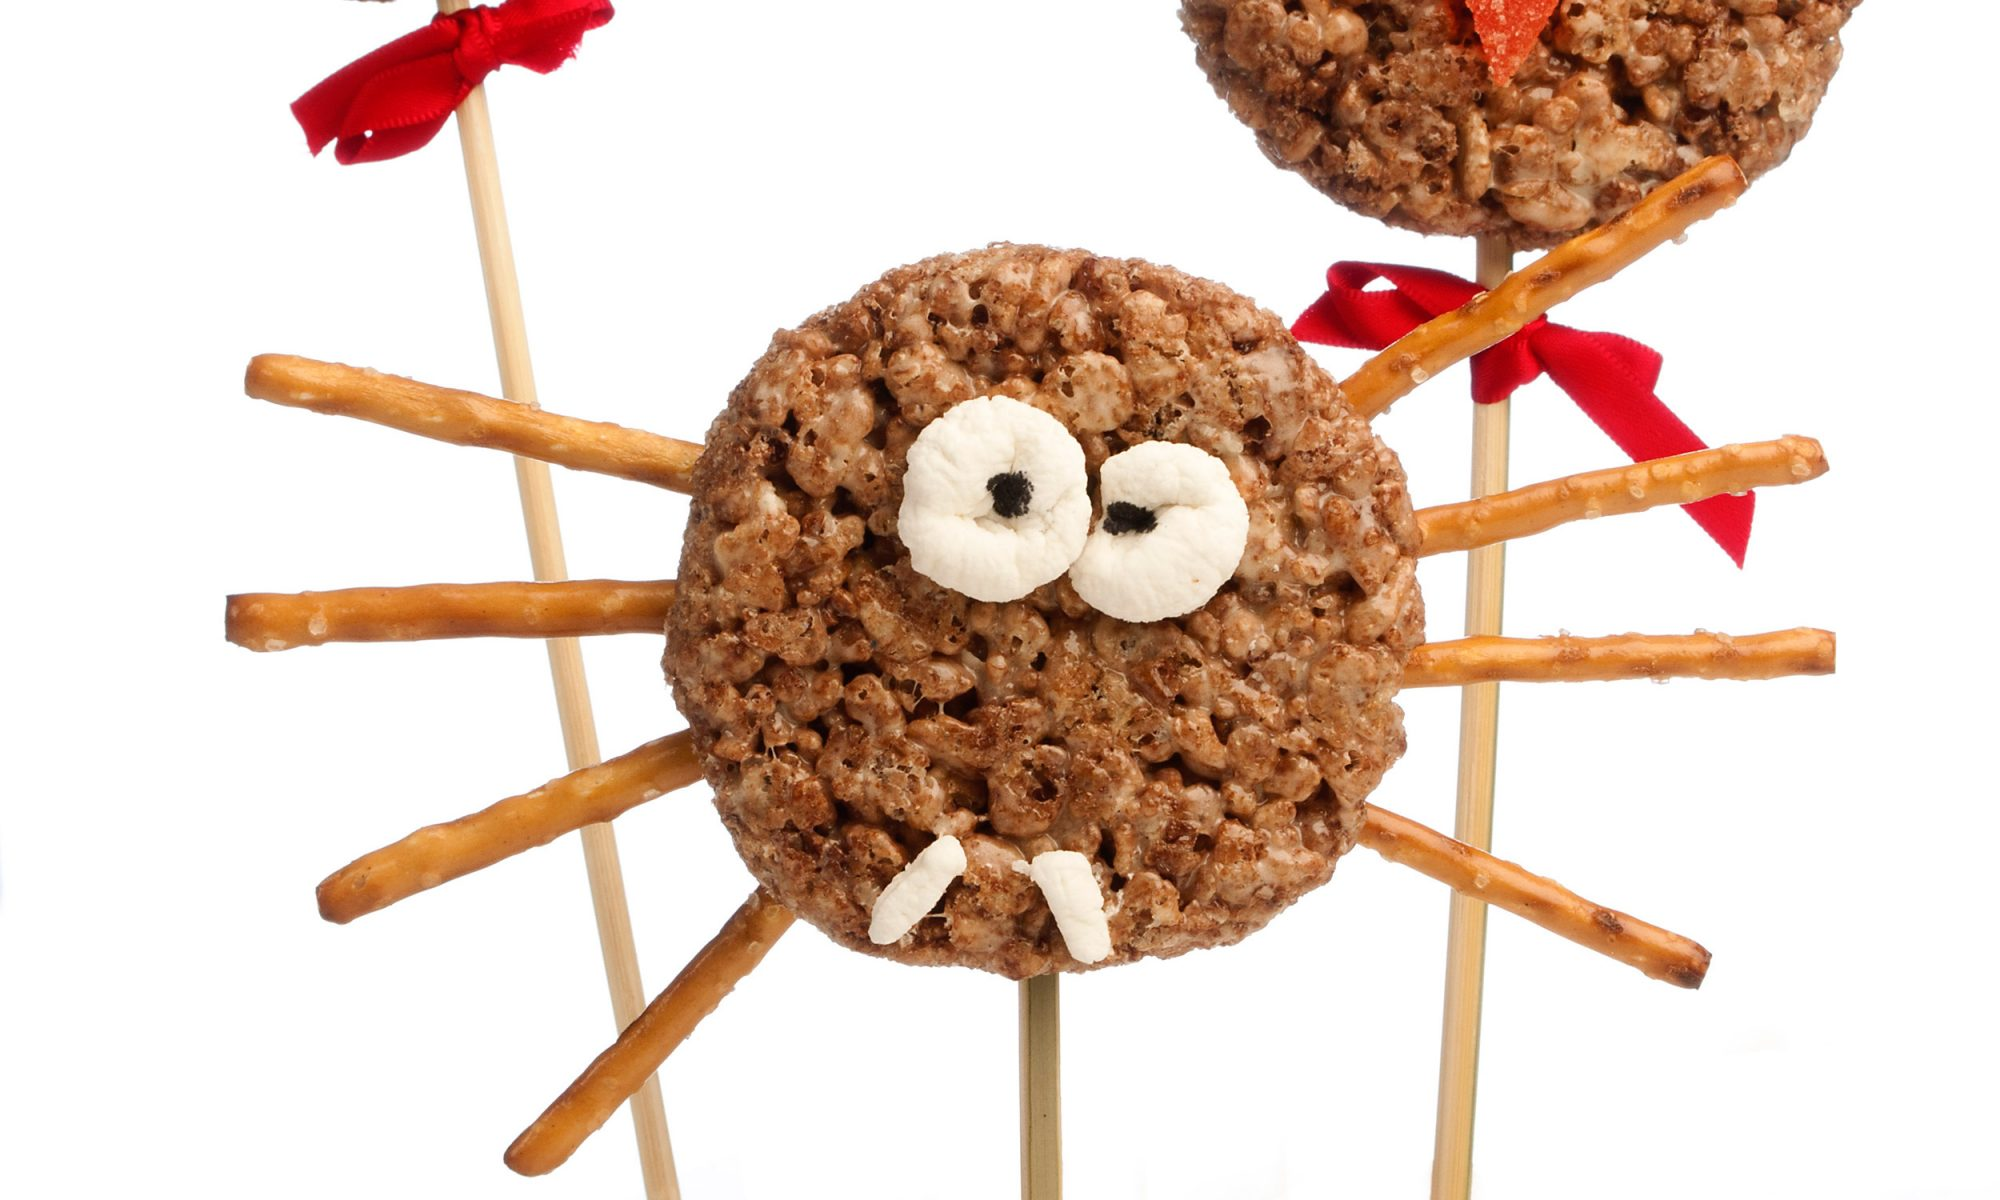 EC: These 15 Halloween Rice Krispies Treats Are Just the Trick